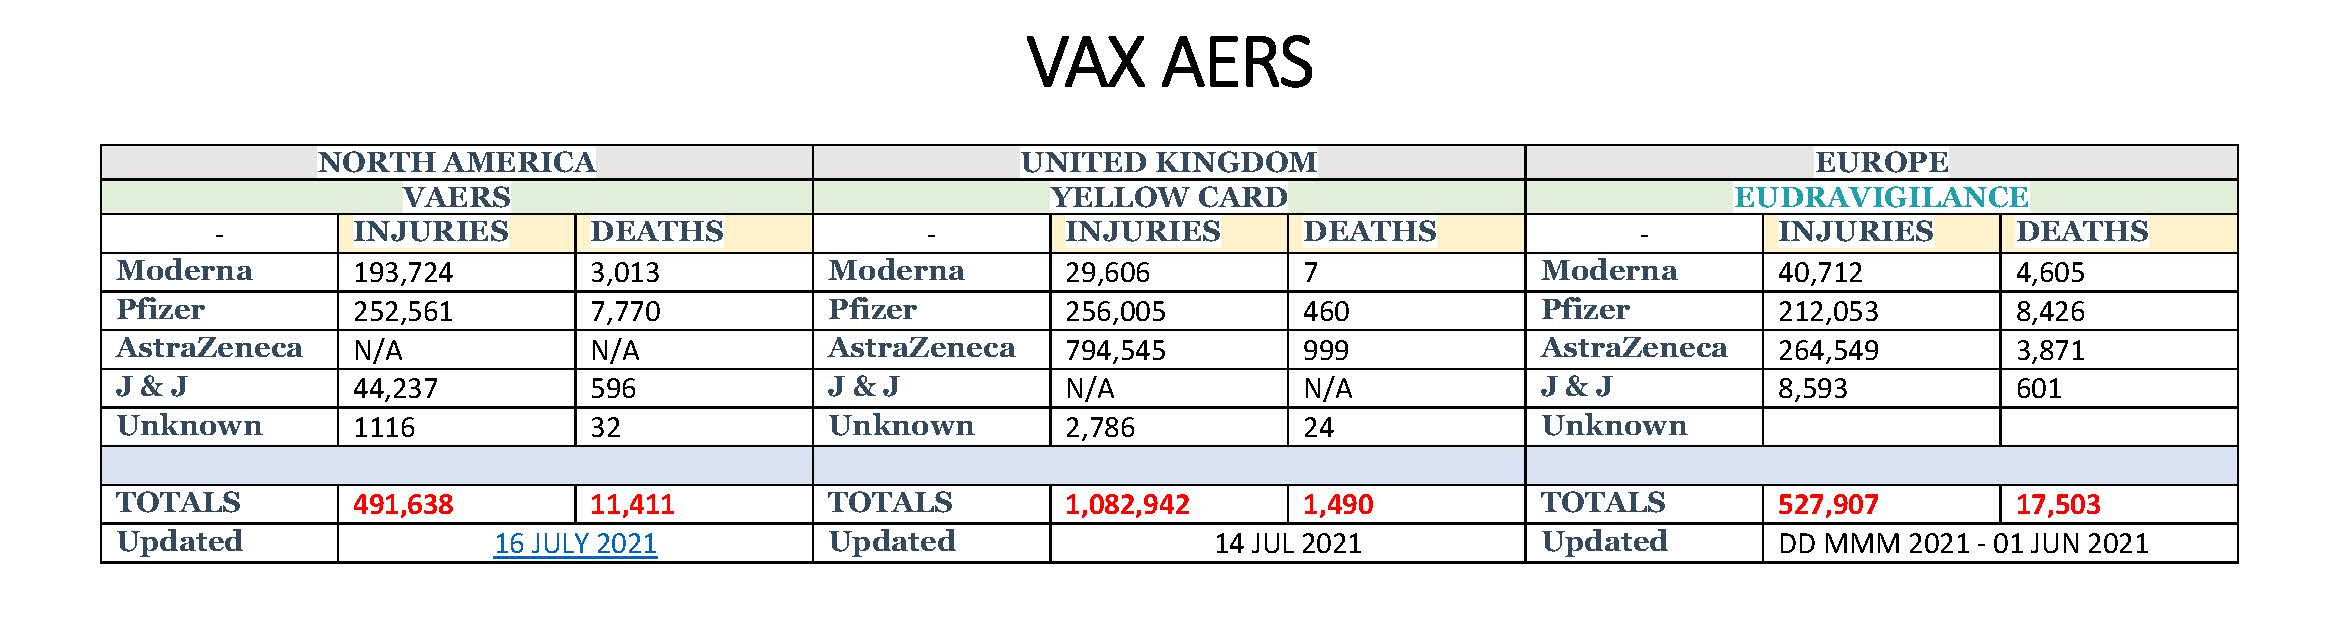 Adverse Reactions and Death Tally (Click to Expand)